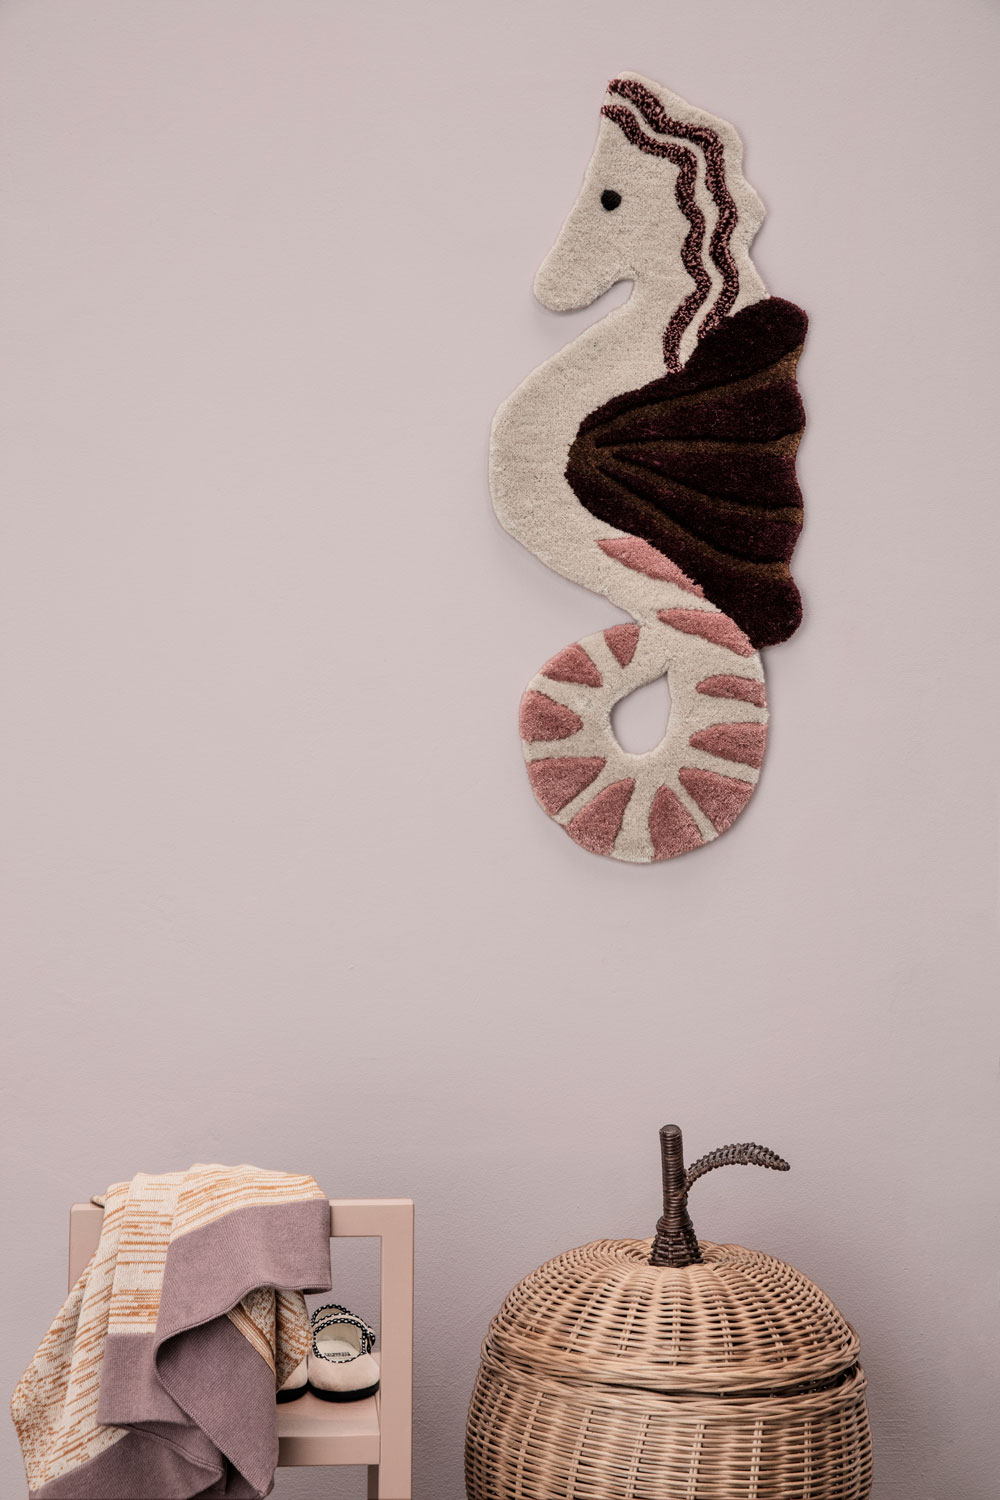 Seahorse wall decor from ferm LIVING